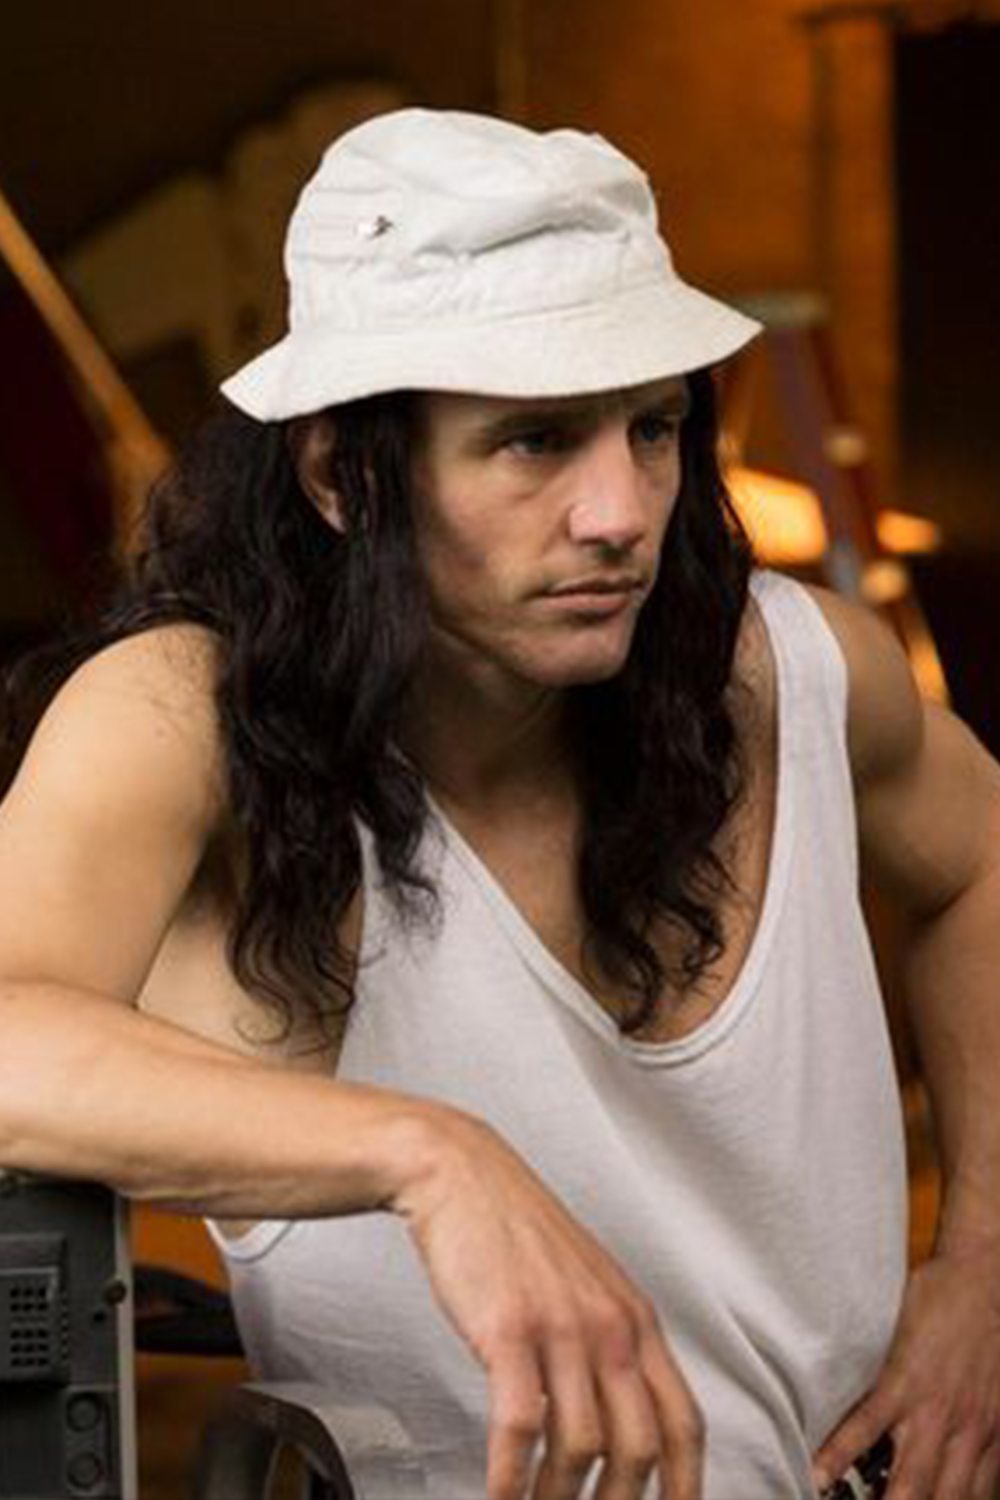 Check the link for a review on The Disaster Artist in 2020